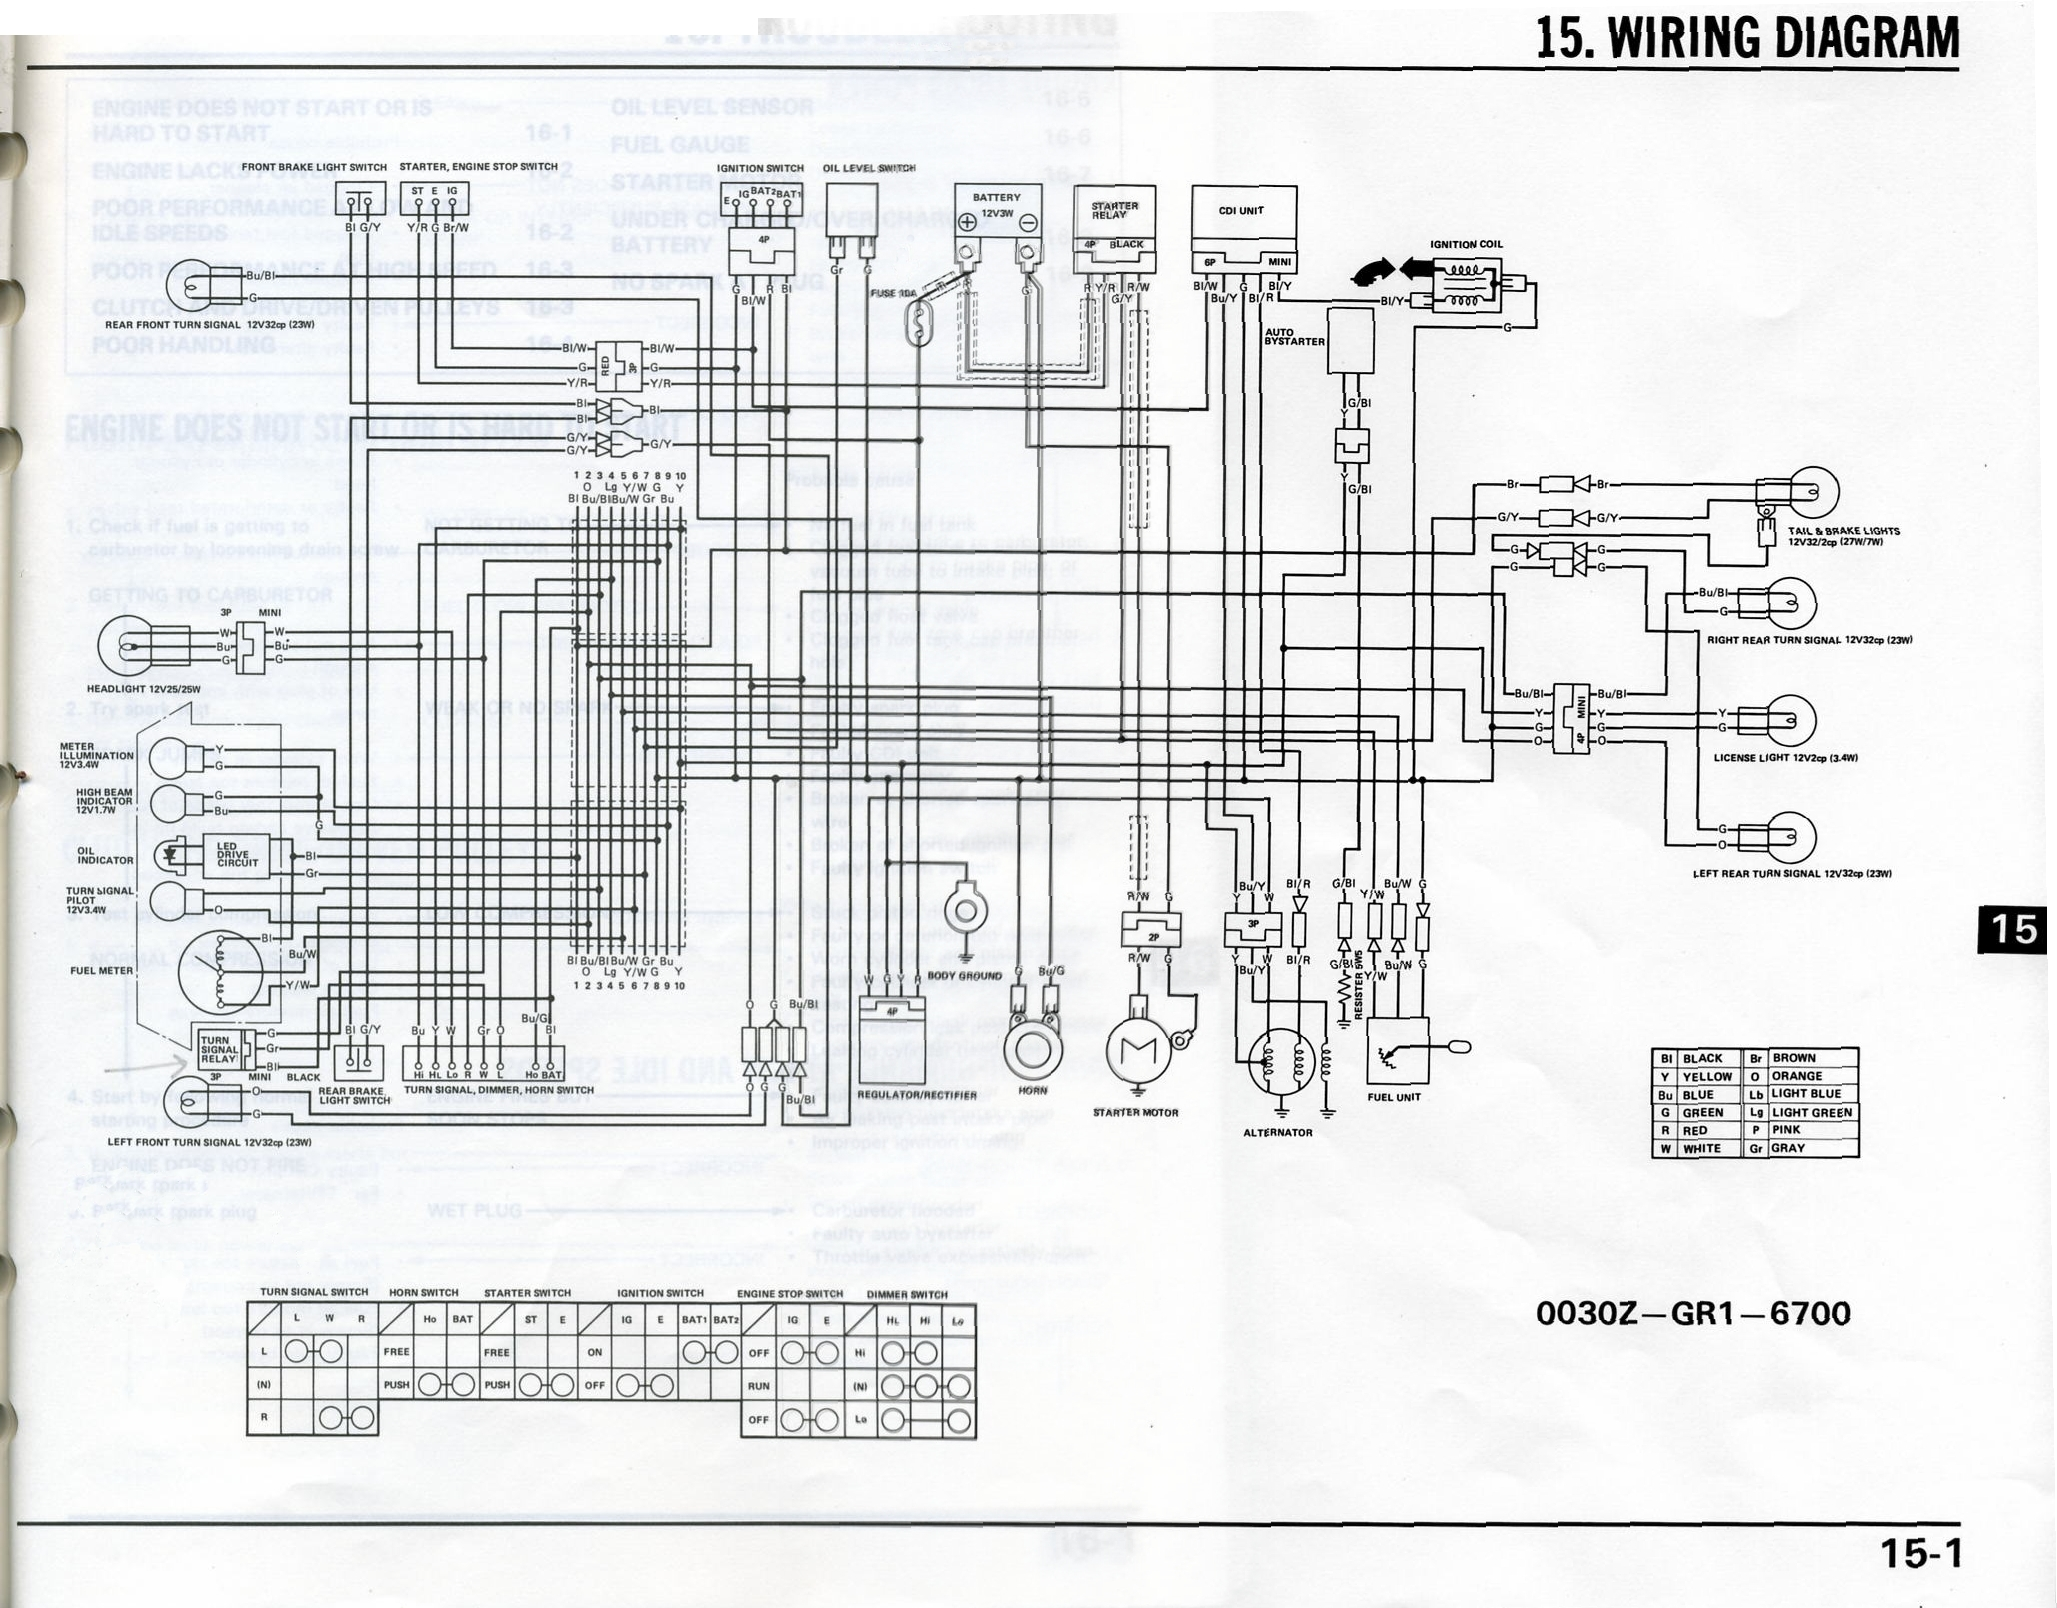 honda wiring diagram honda elite wiring diagram honda wiring diagrams